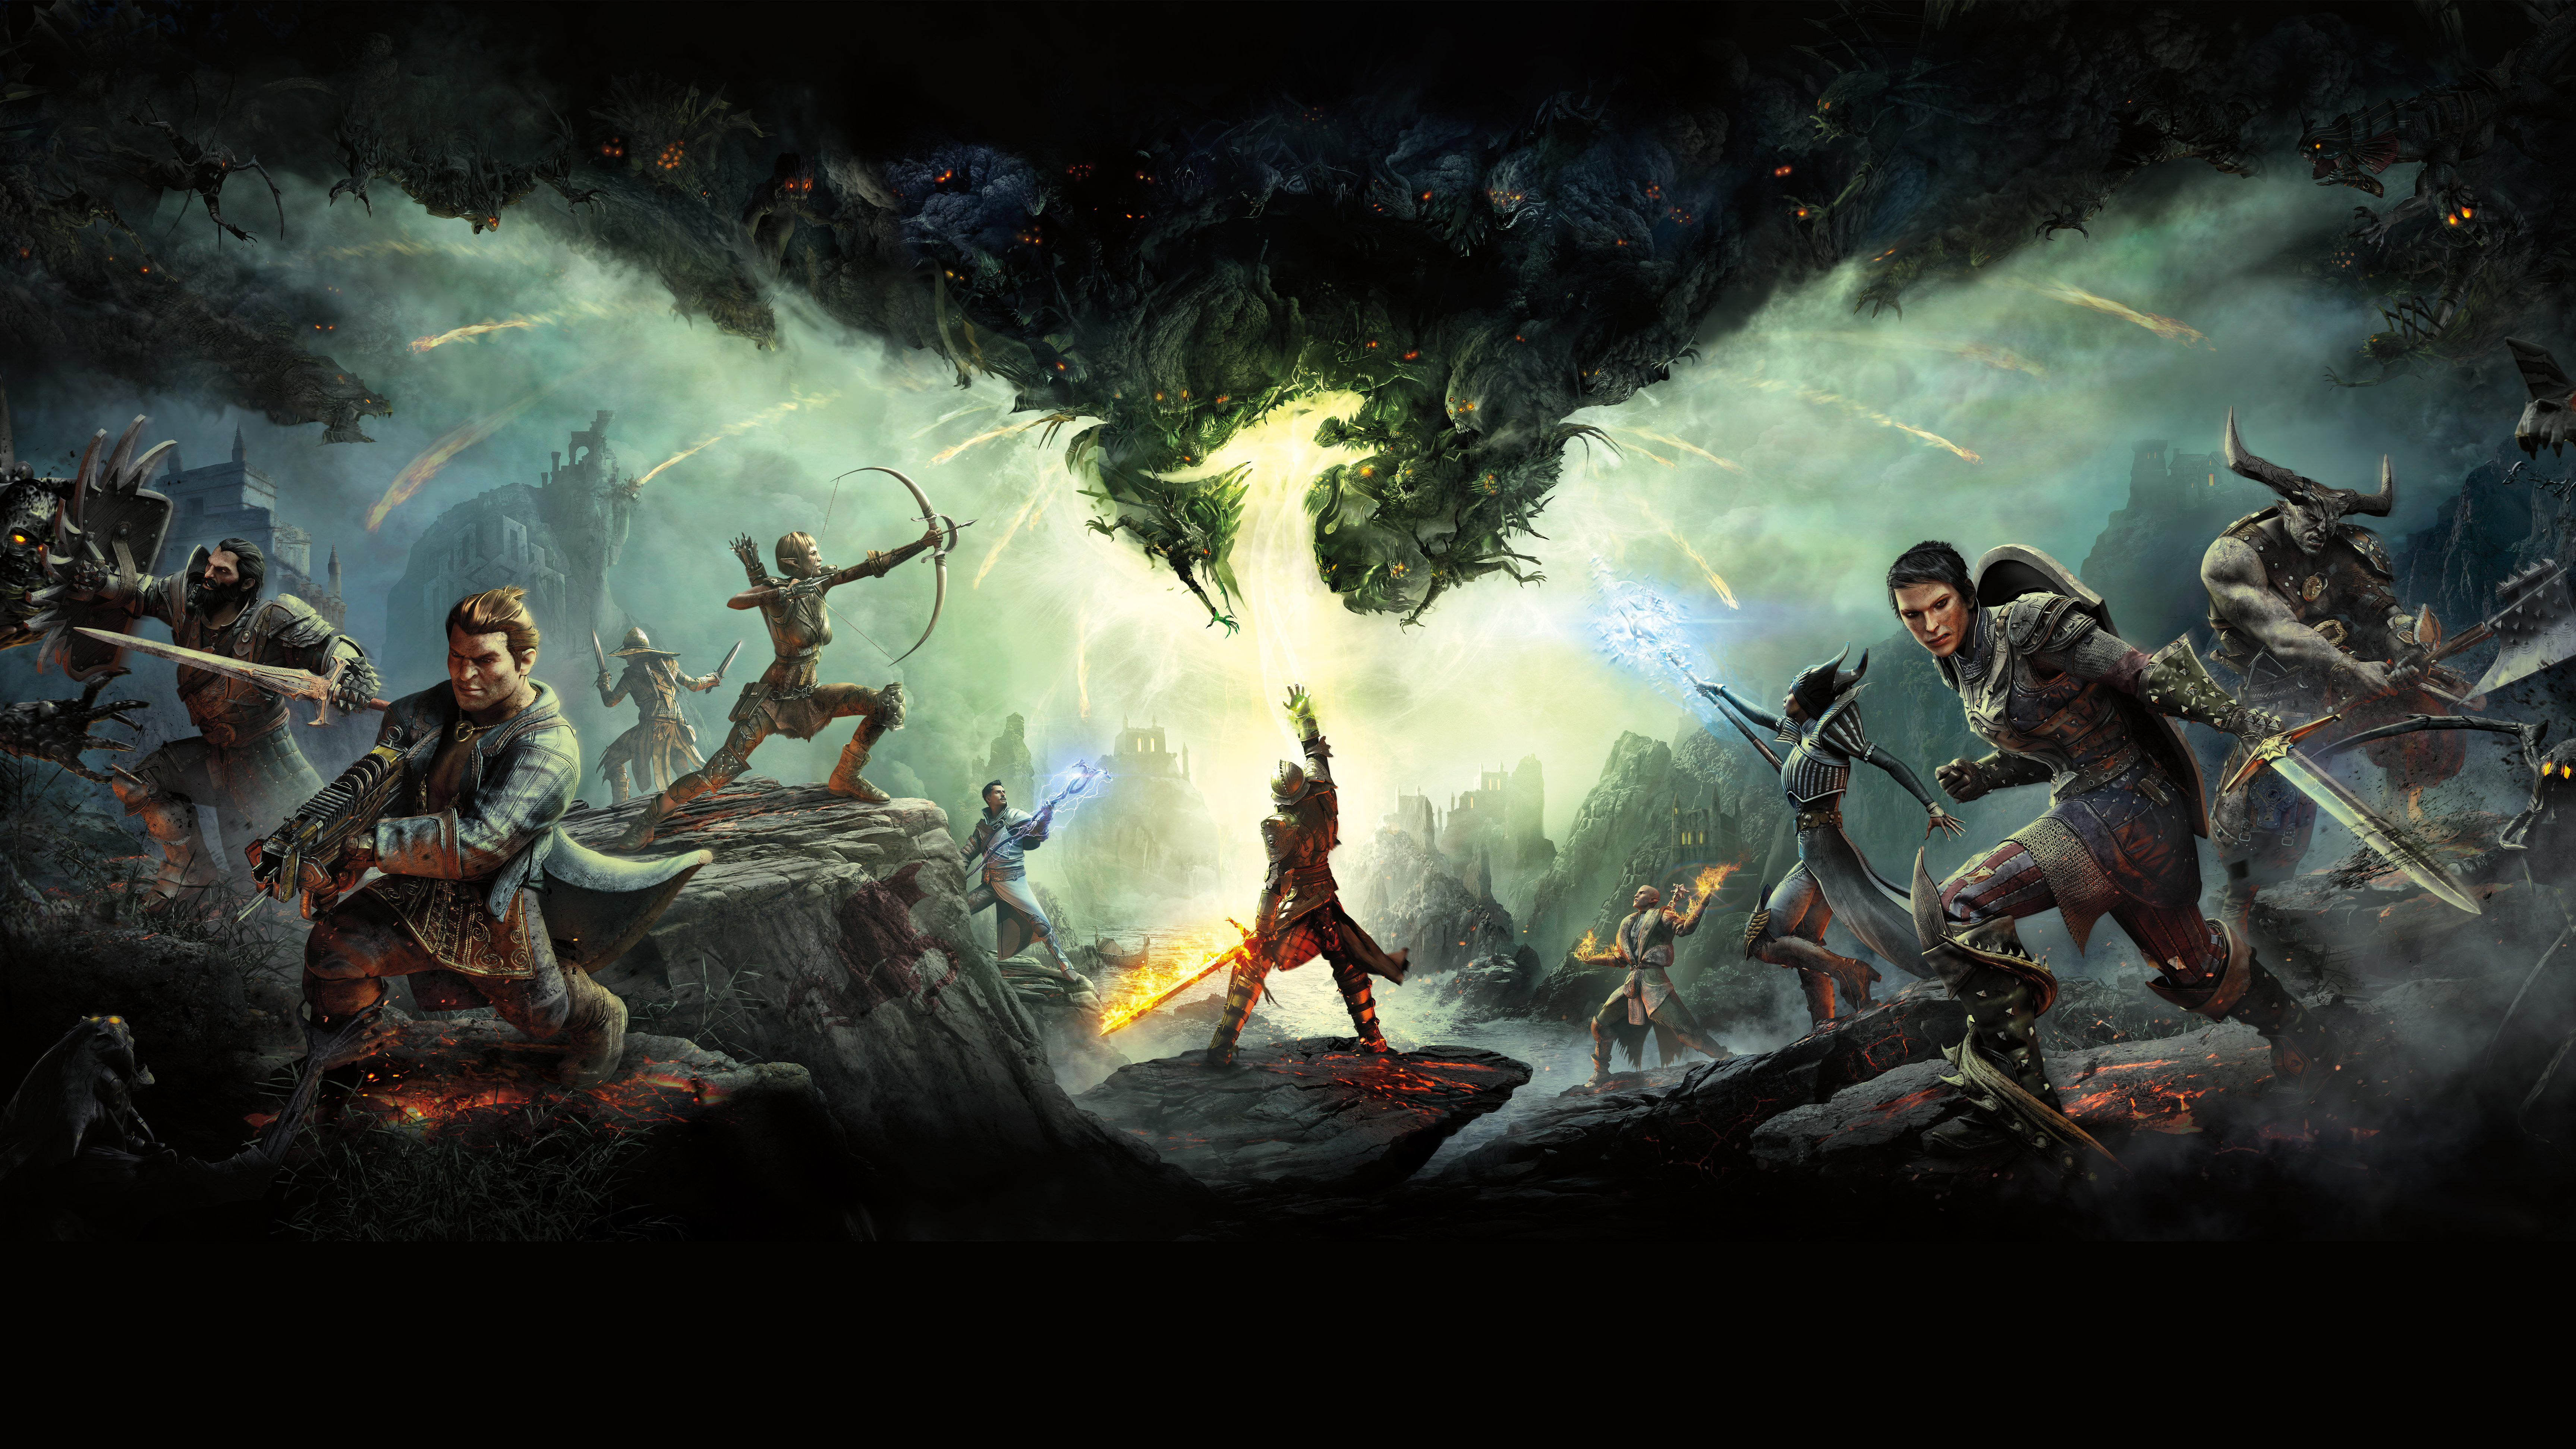 Dragon Age Inquisition Wallpapers Top Free Dragon Age Inquisition Backgrounds Wallpaperaccess